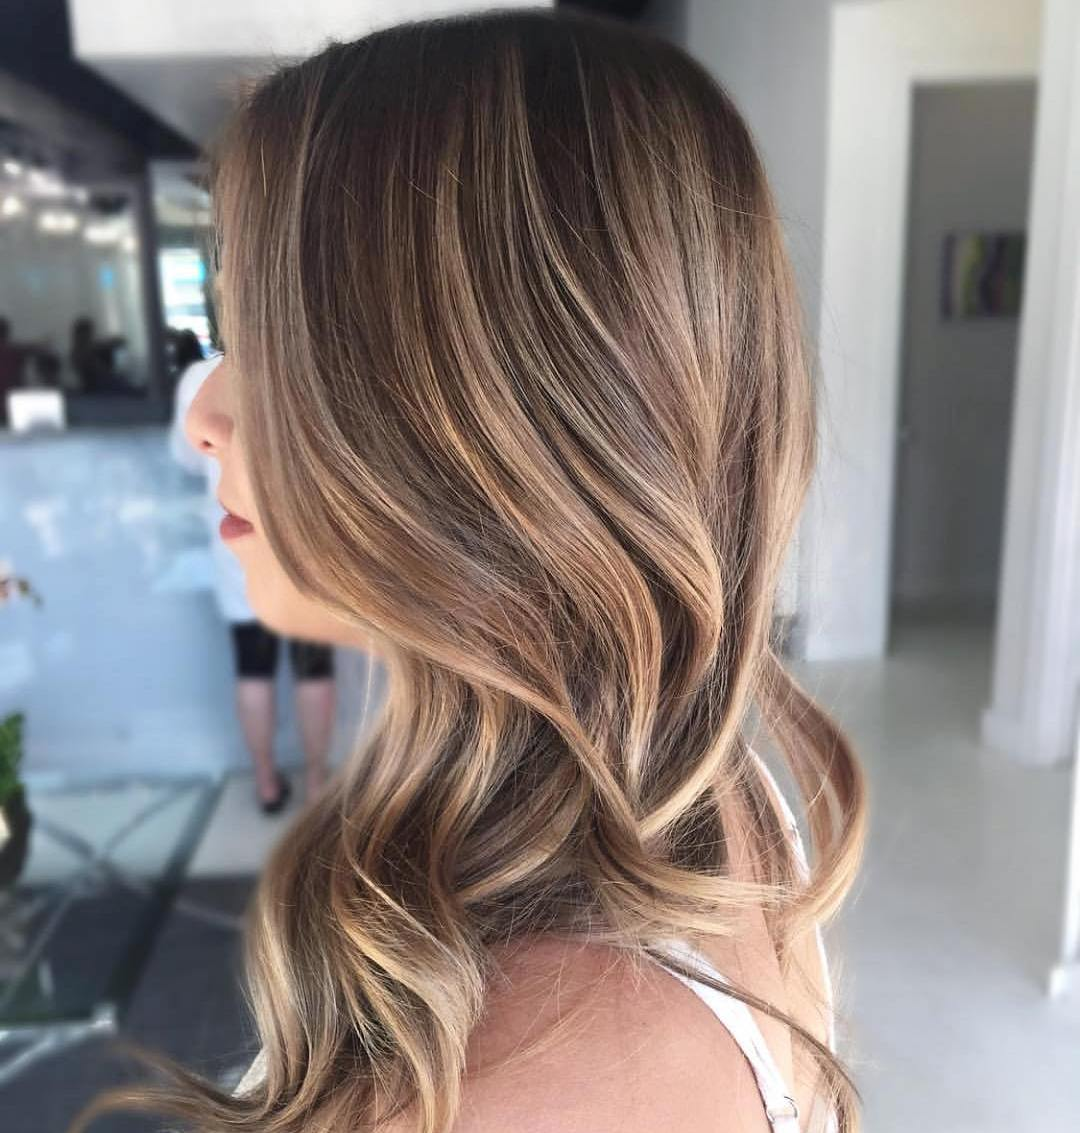 Balayage Braun Balayage Vs Ombre Hair Difference Between The Hair Color